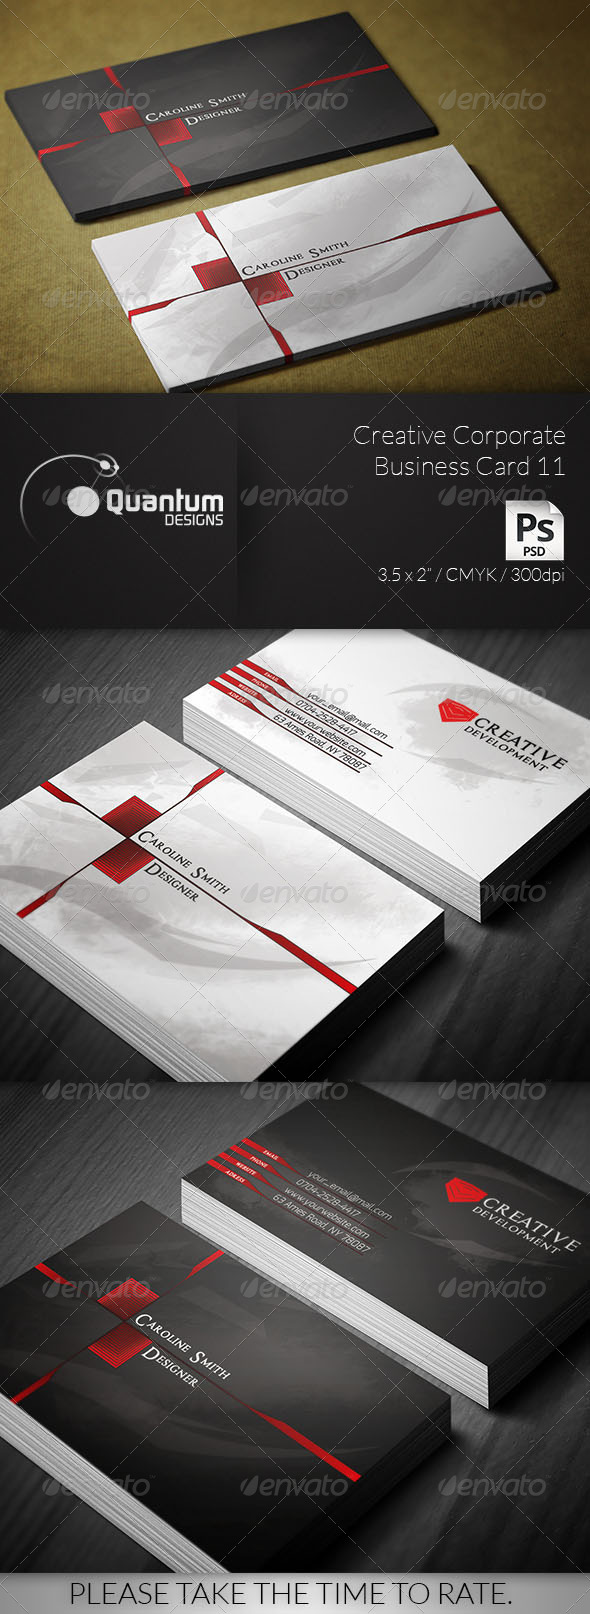 Creative Corporate Business Card 11 - Creative Business Cards